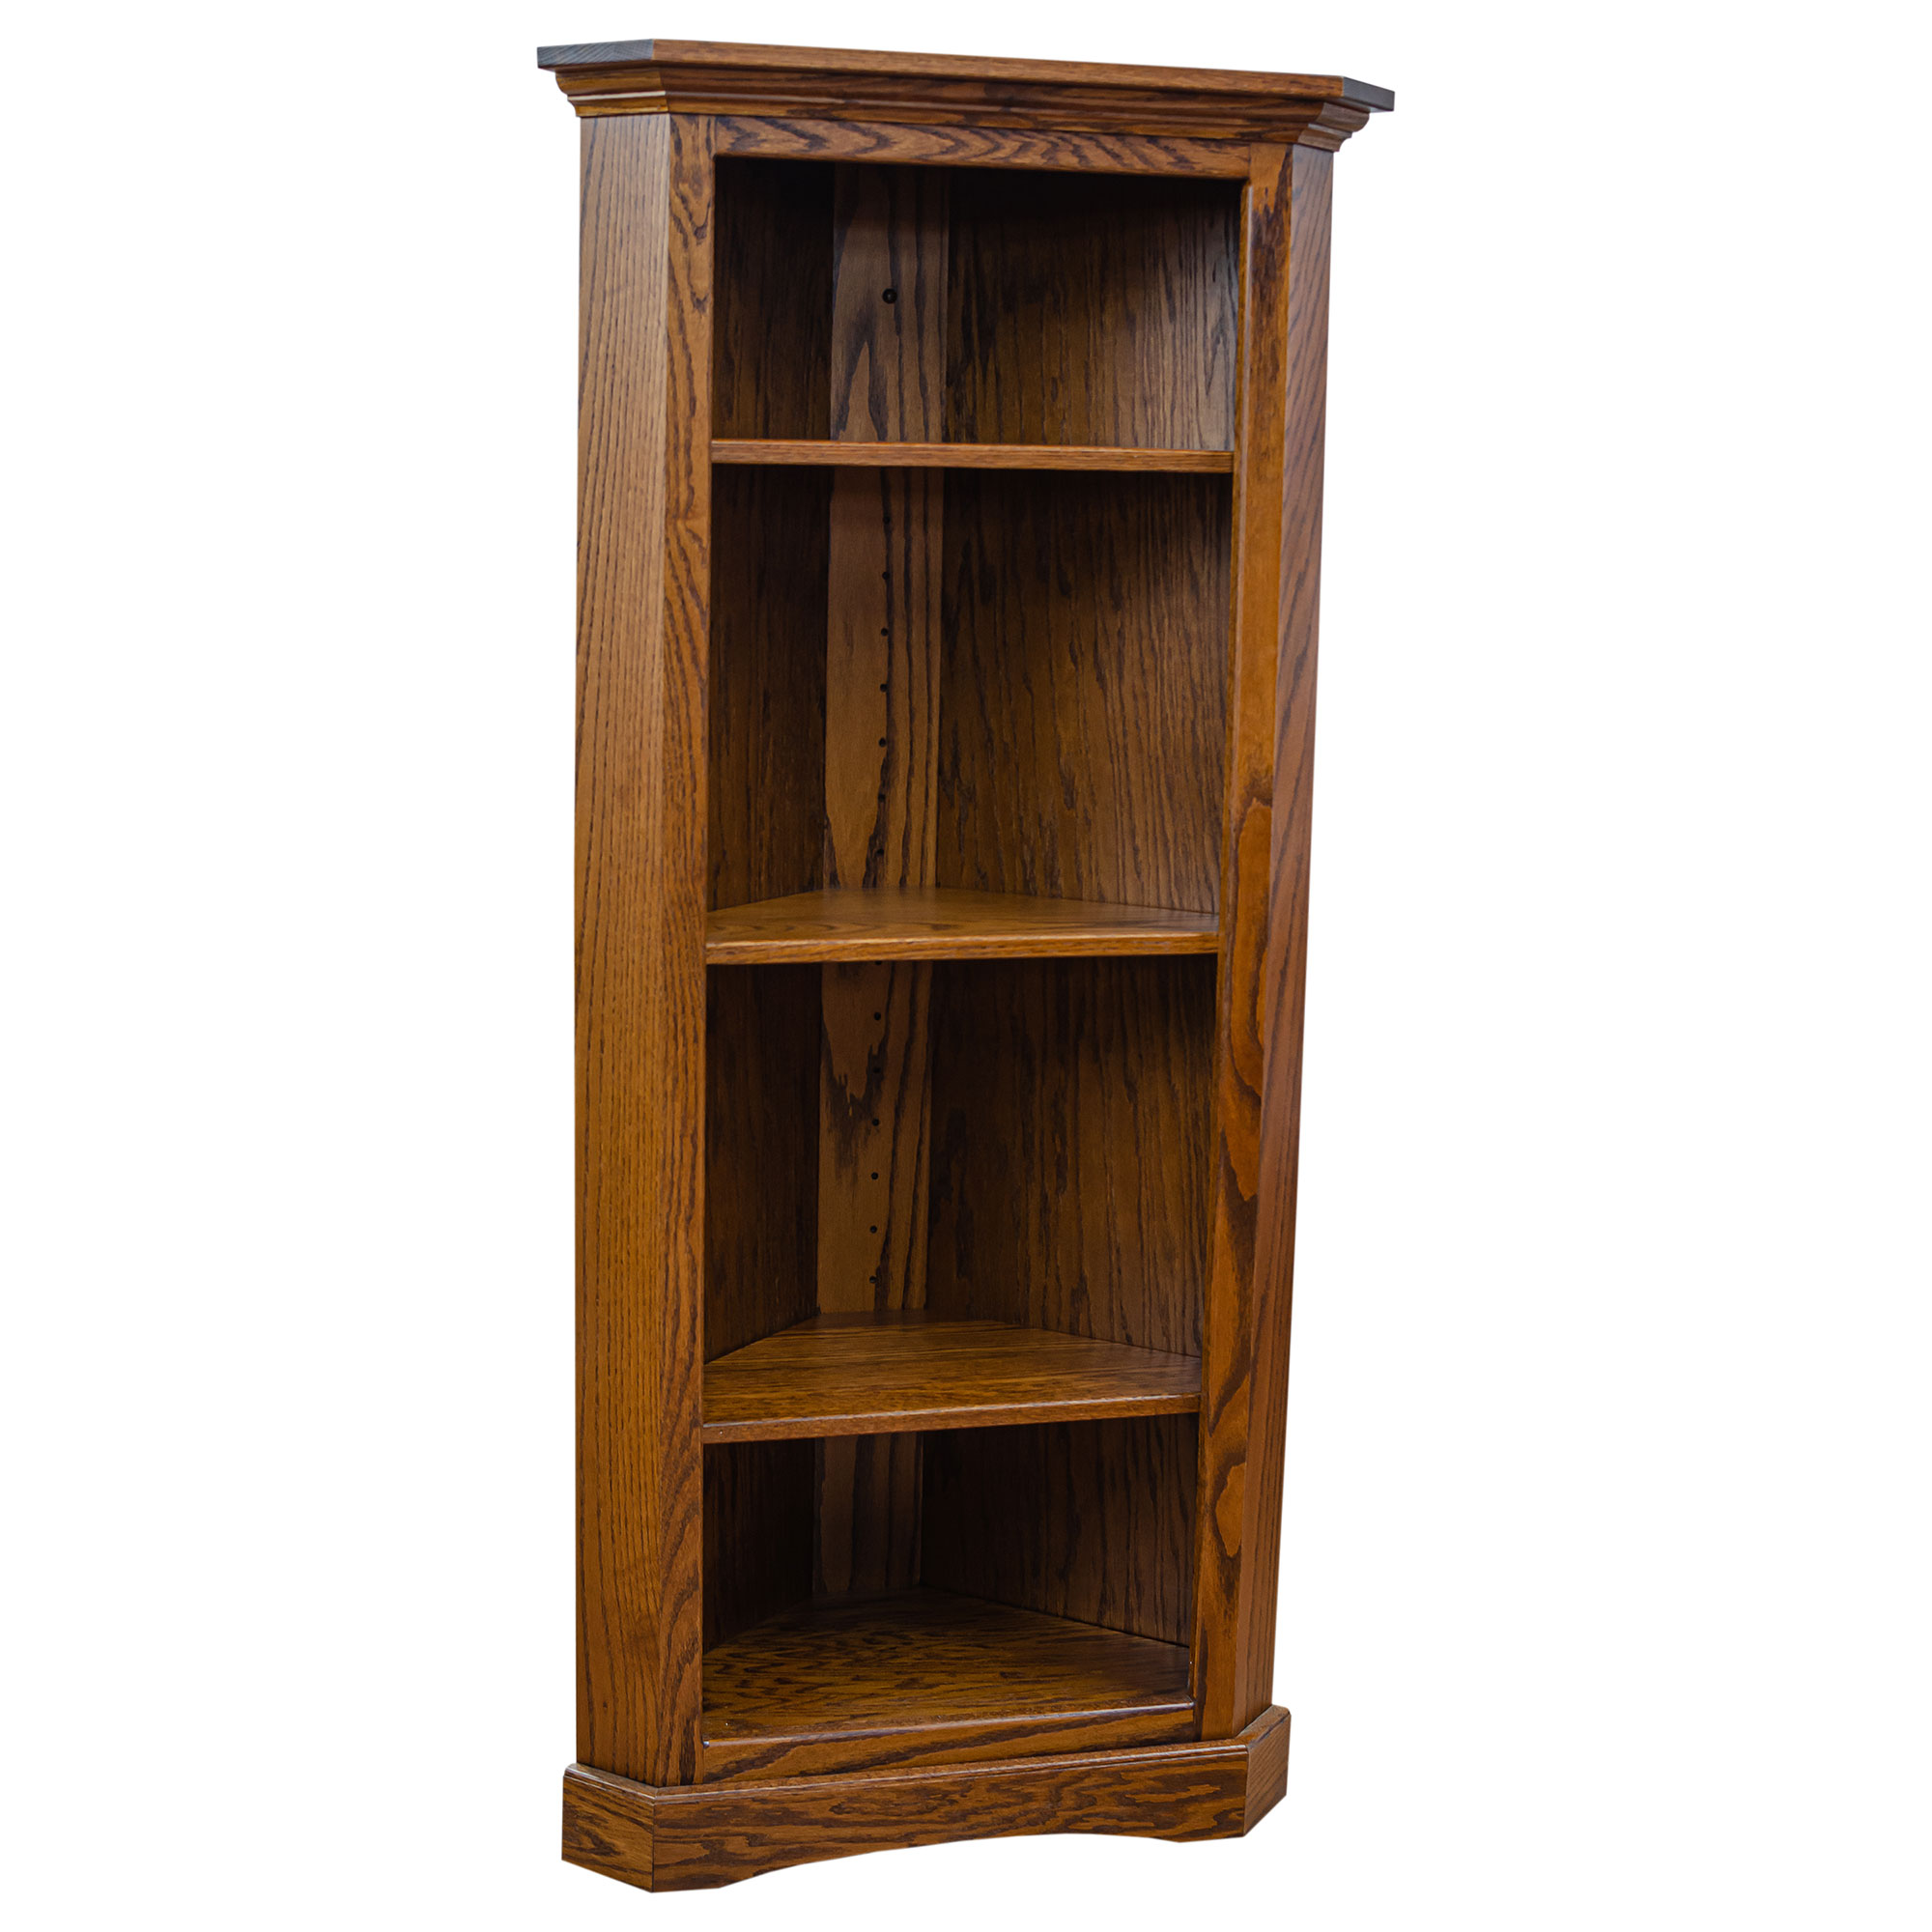 Solid Wood Bookcases Handcrafted Amish Office Furniture